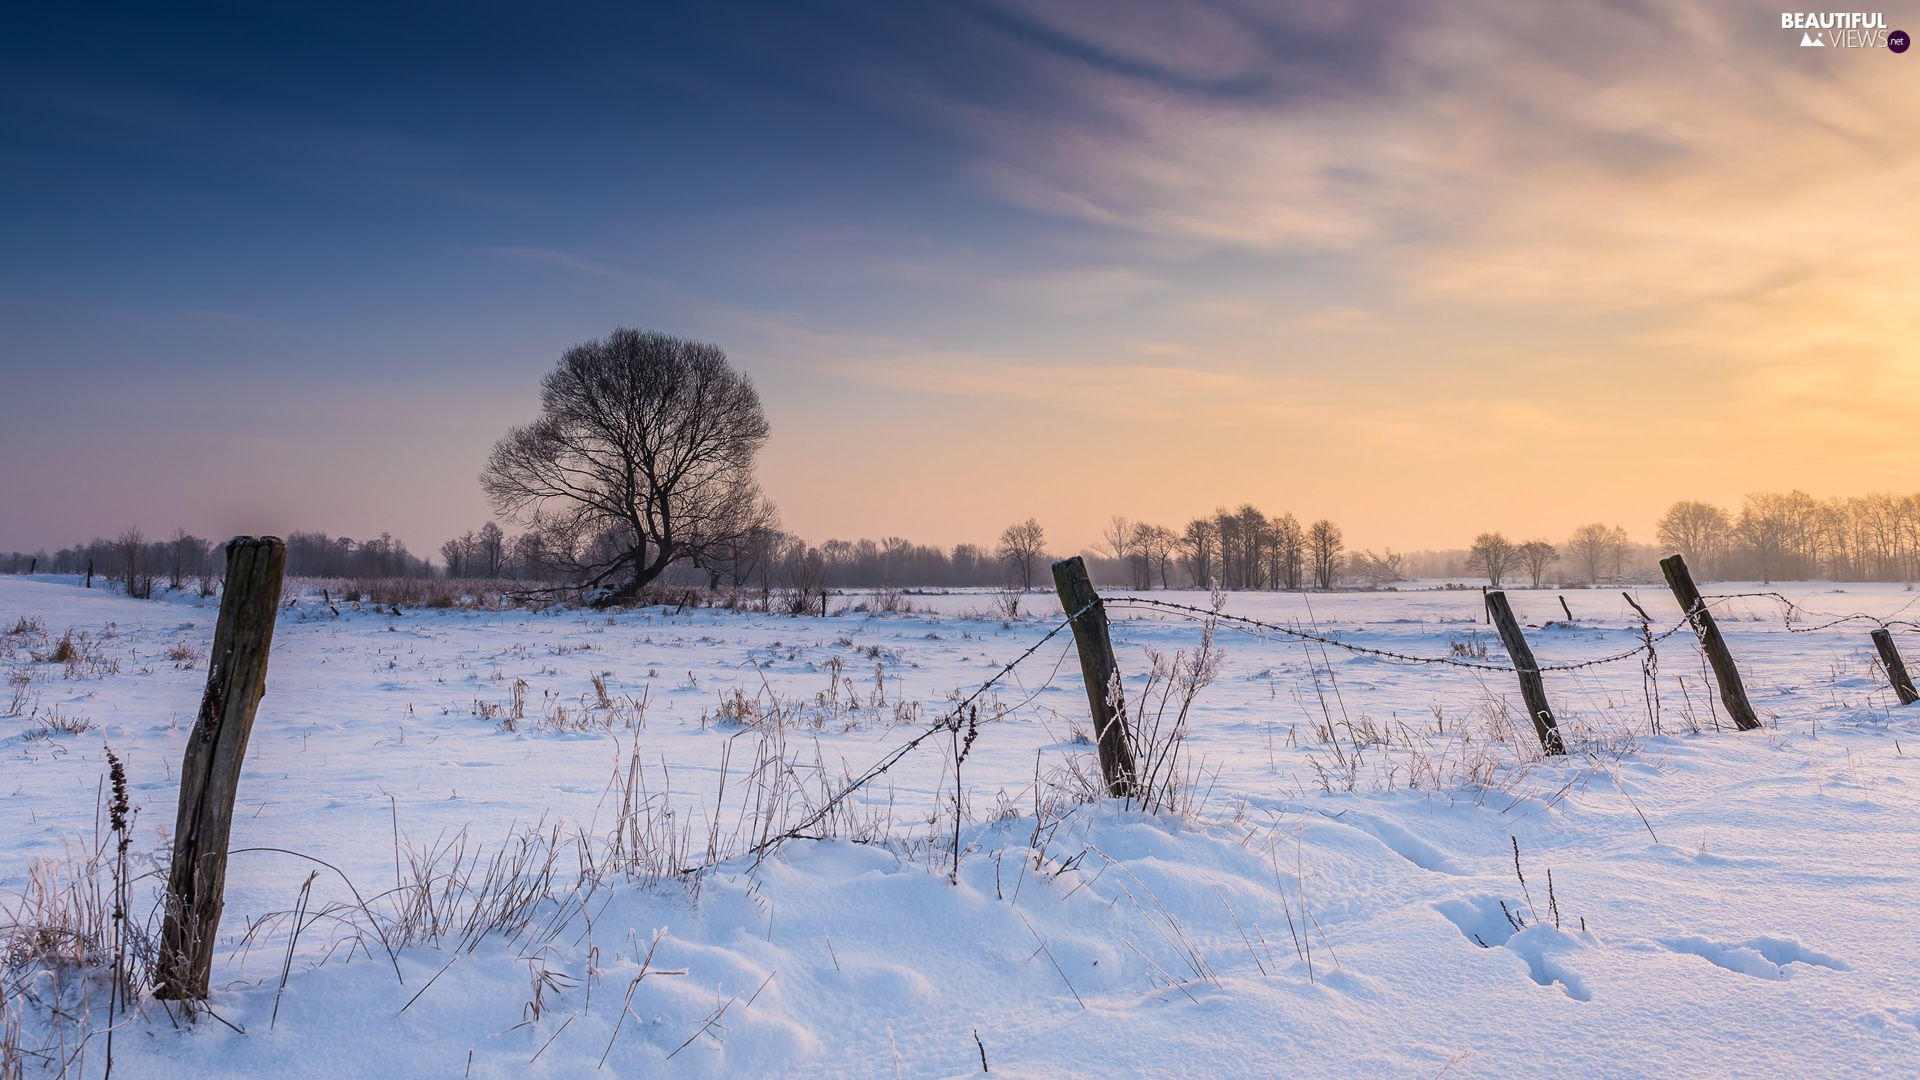 Sunrise, fence, trees, viewes, winter